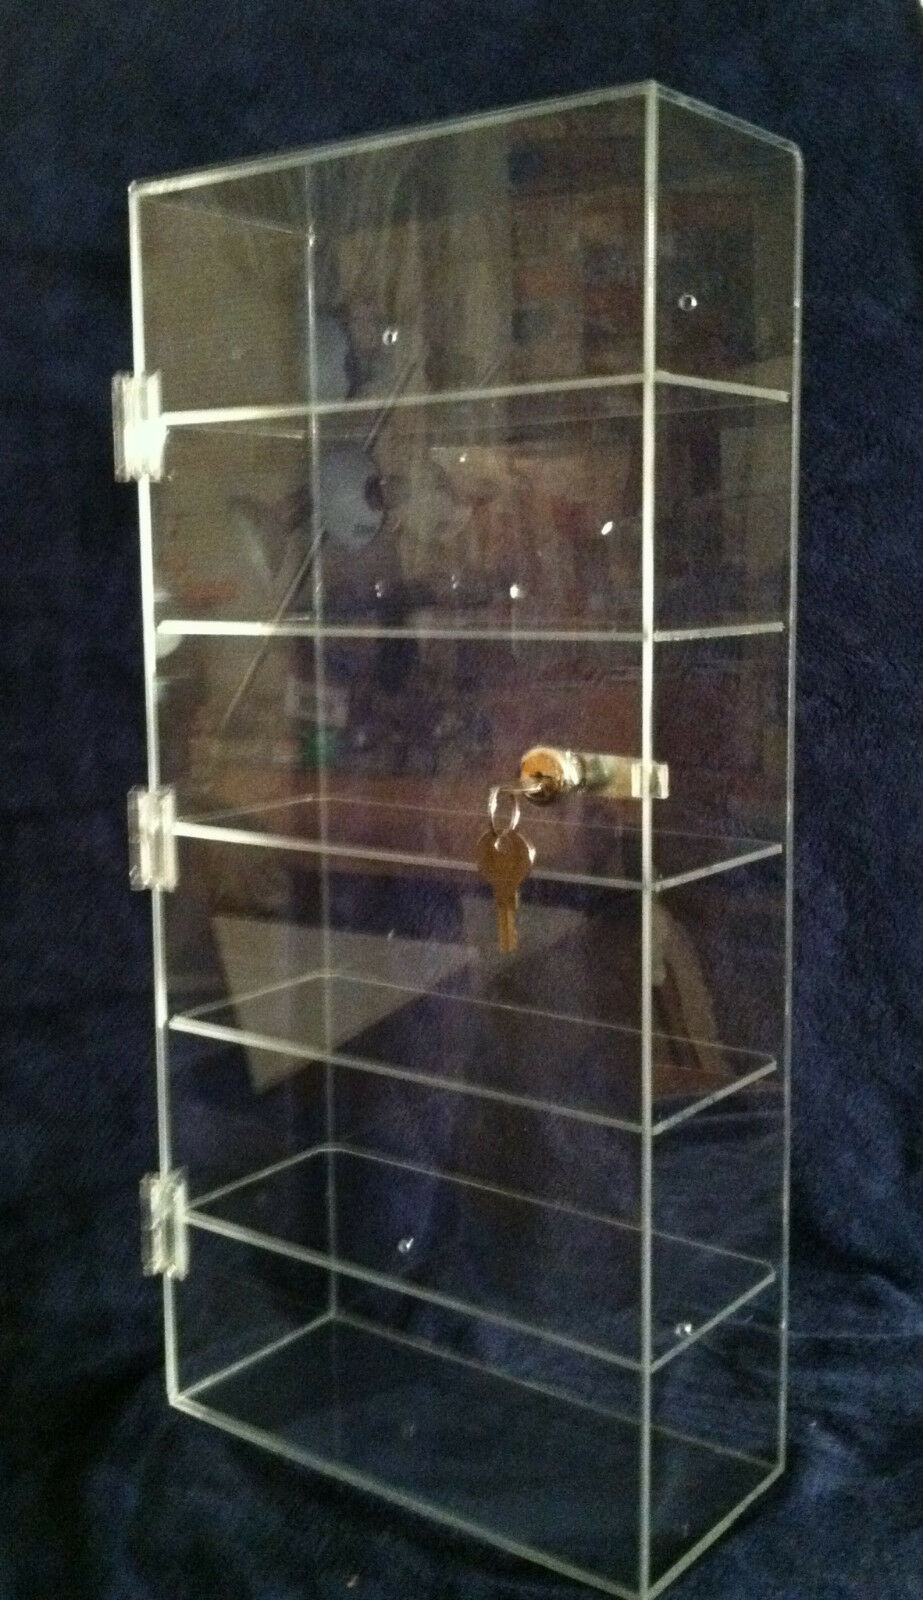 Clear Acrylic Display Tower Case 10 x 4.5 x 22